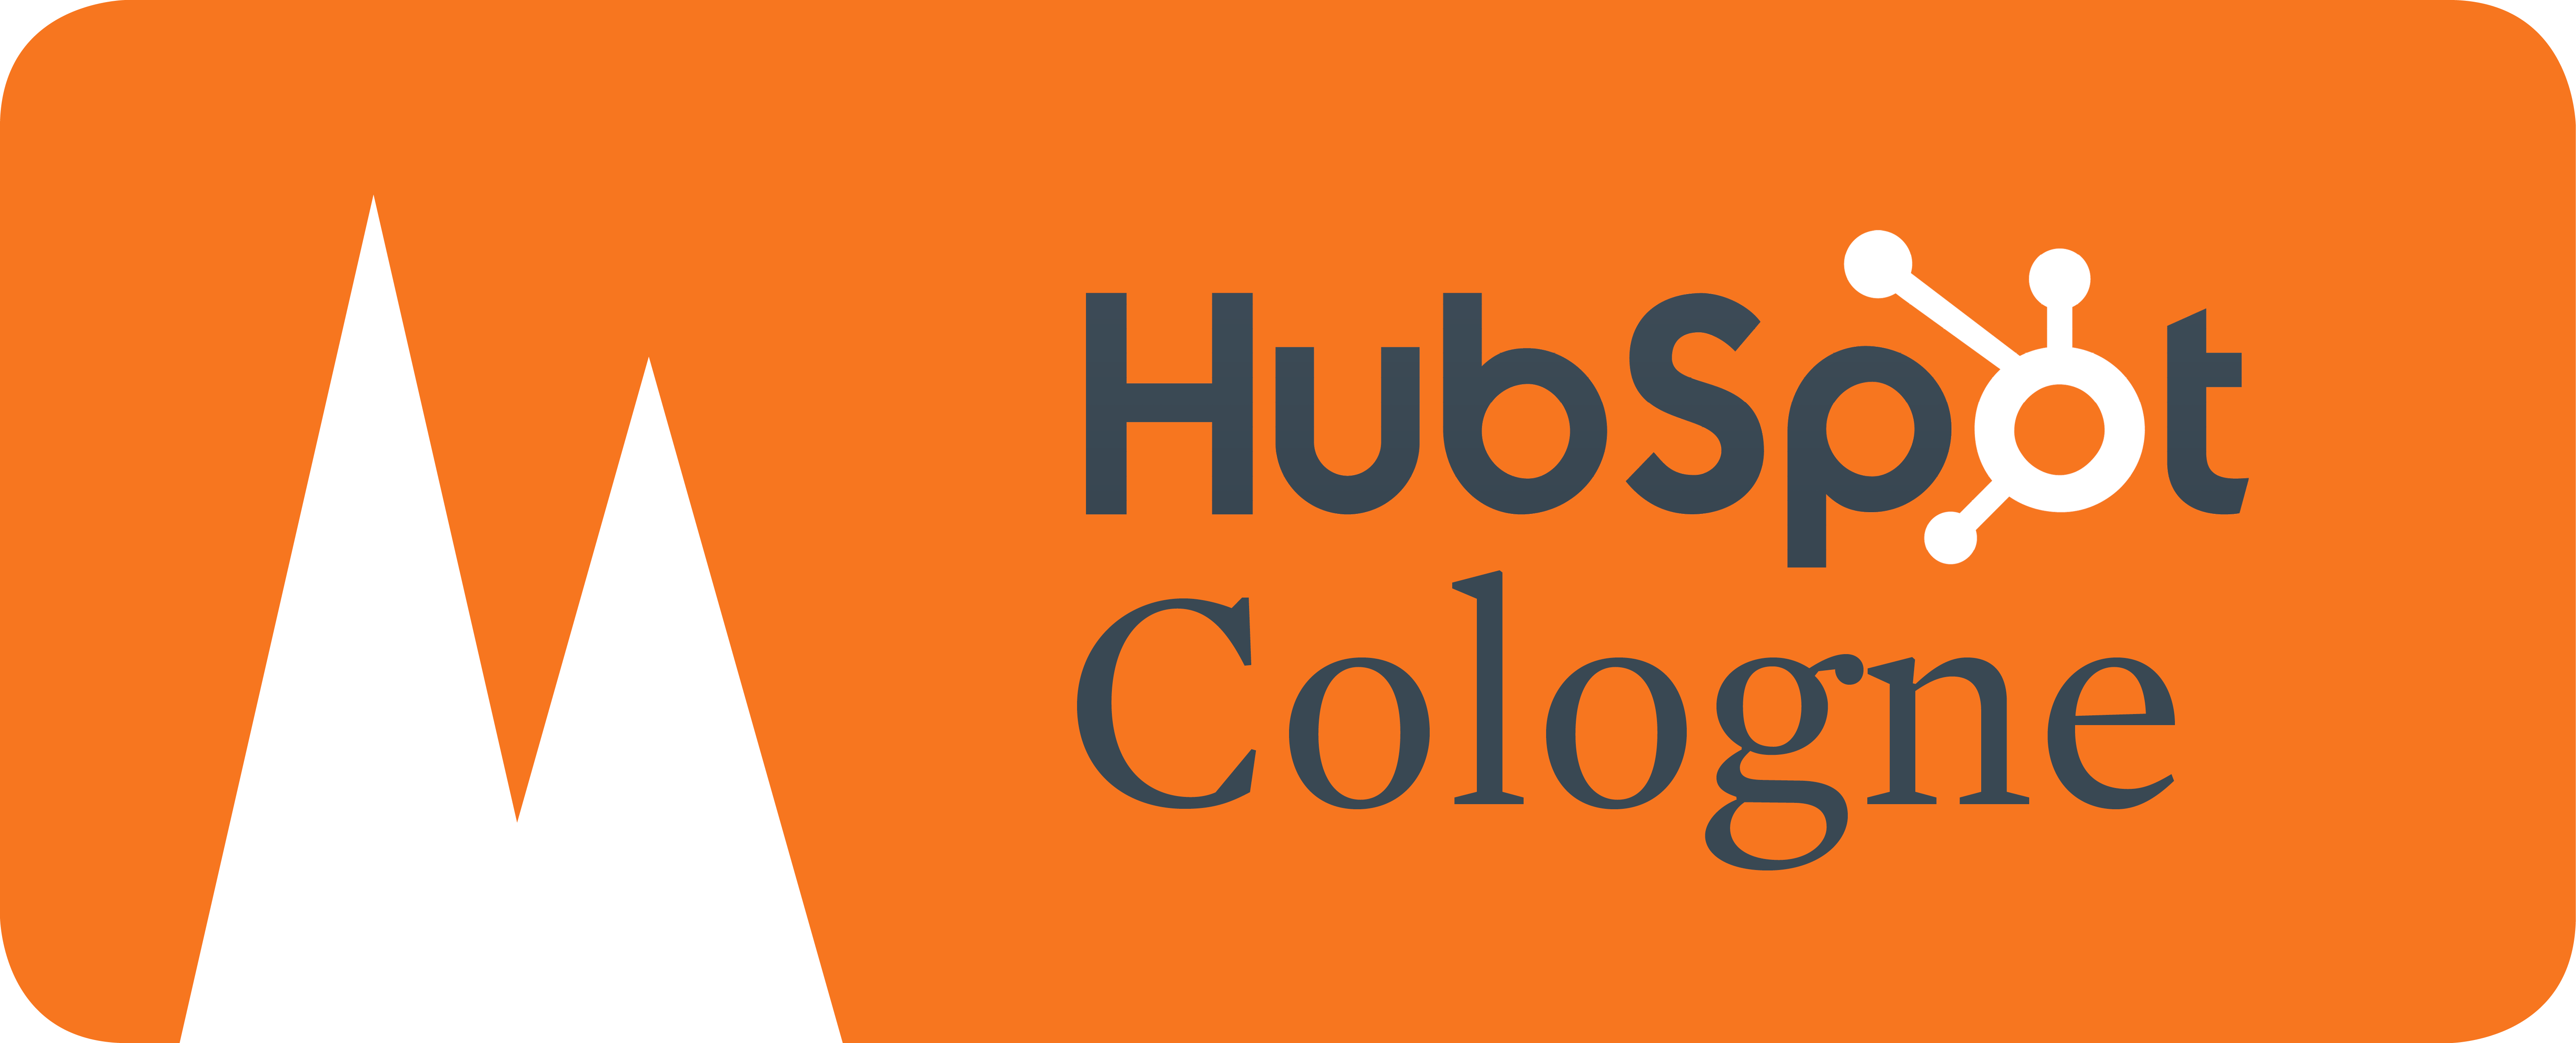 HubSpot Cologne